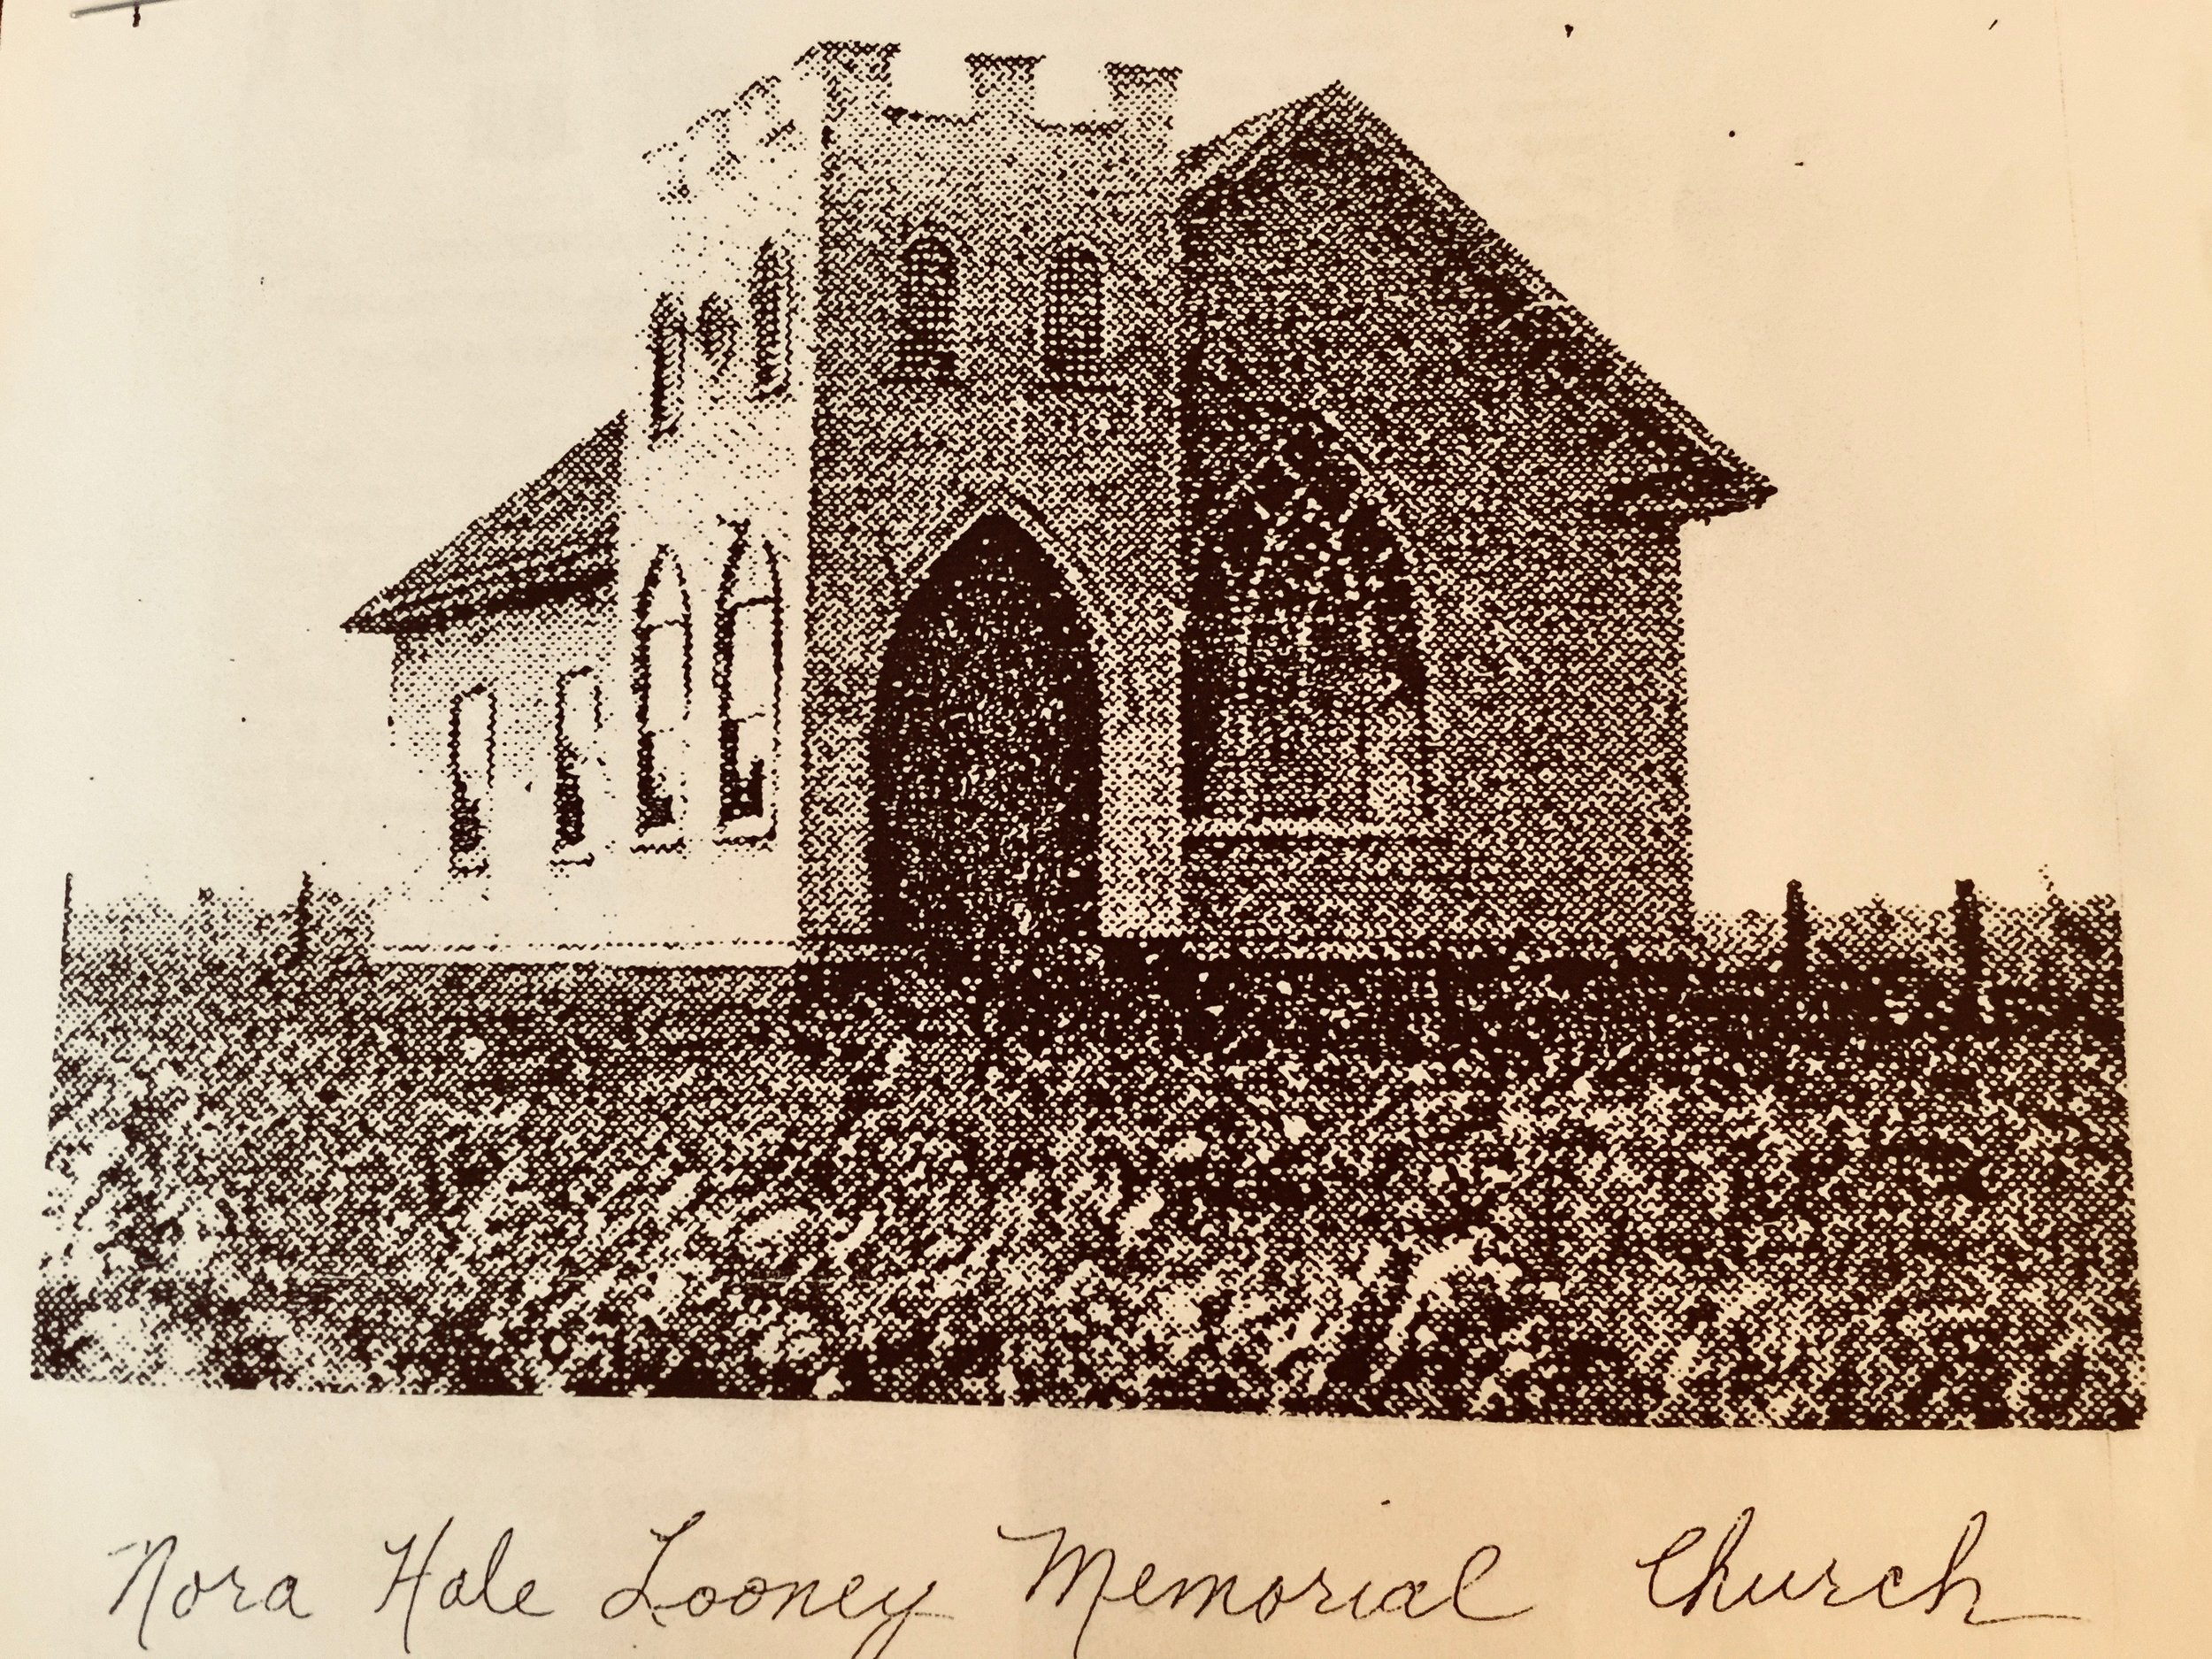 Nora Hale Looney Memorial Church (1911)